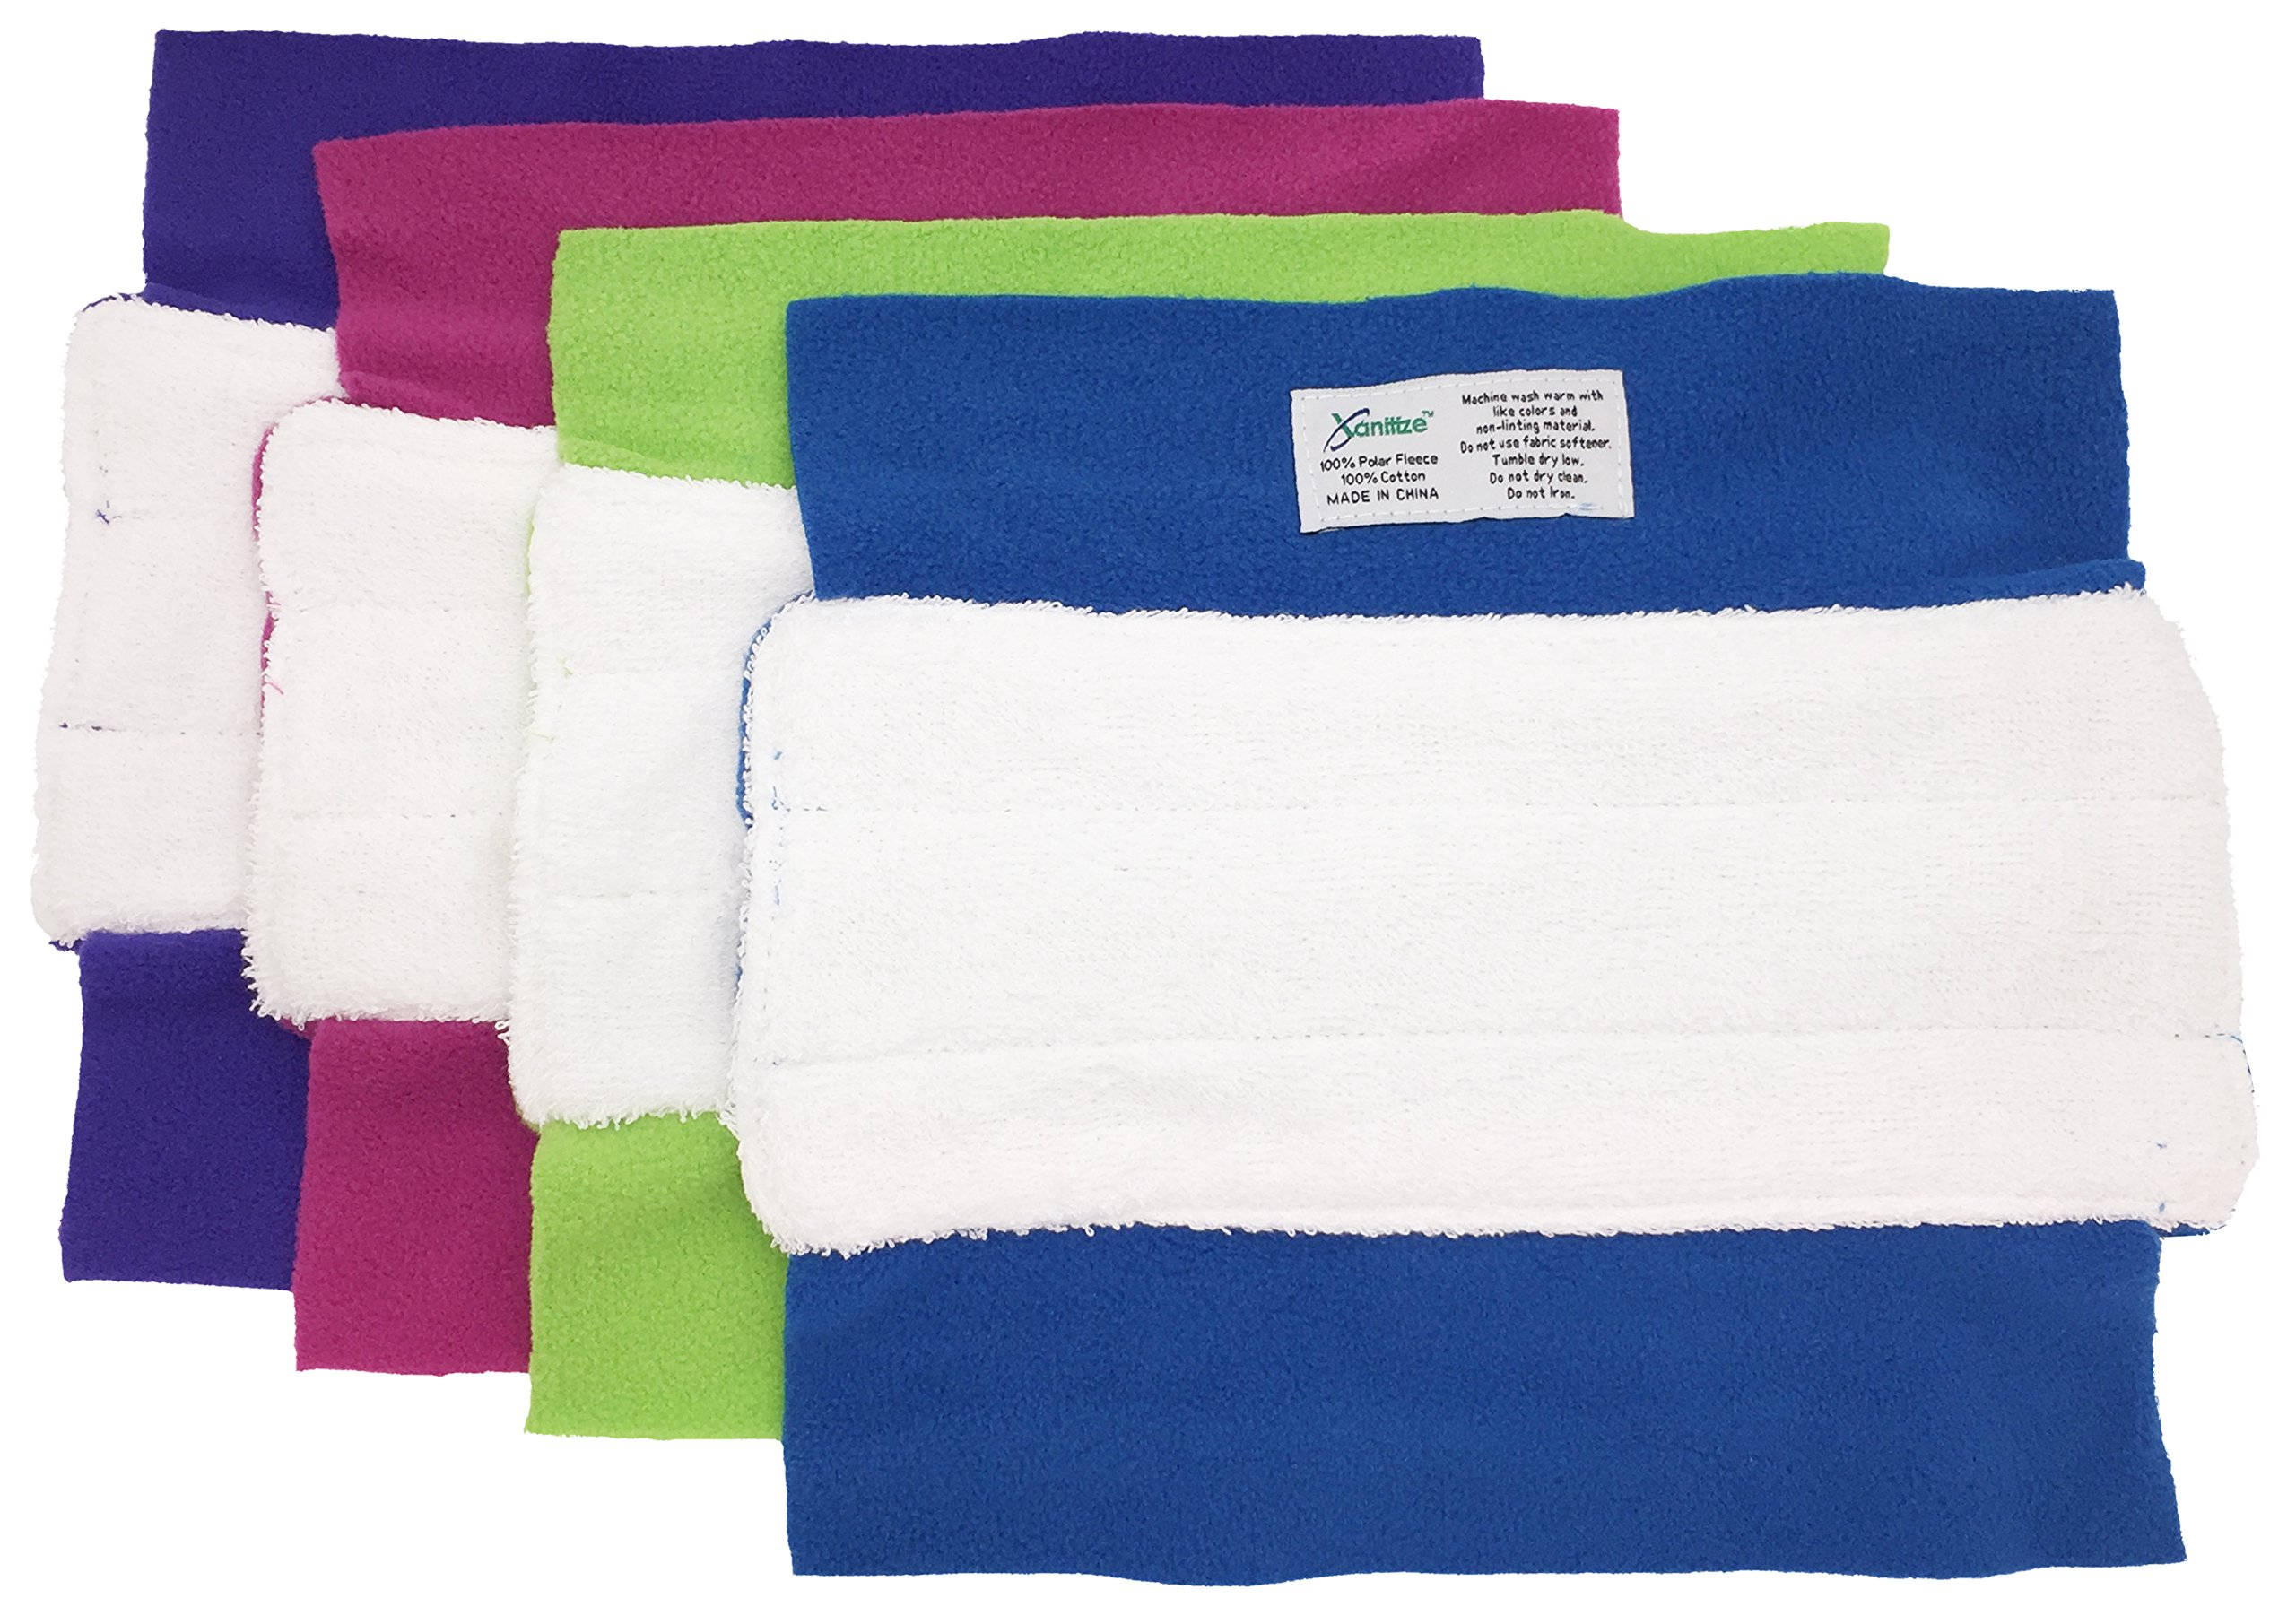 Wet Mop Pads for Sweeper - 2 Sided Fleece & Terry Cloth - Washable Reusable by Xanitize (4-Pack) (Standard, Purple, Blue, Green, Pink) by Xanitize (Image #2)